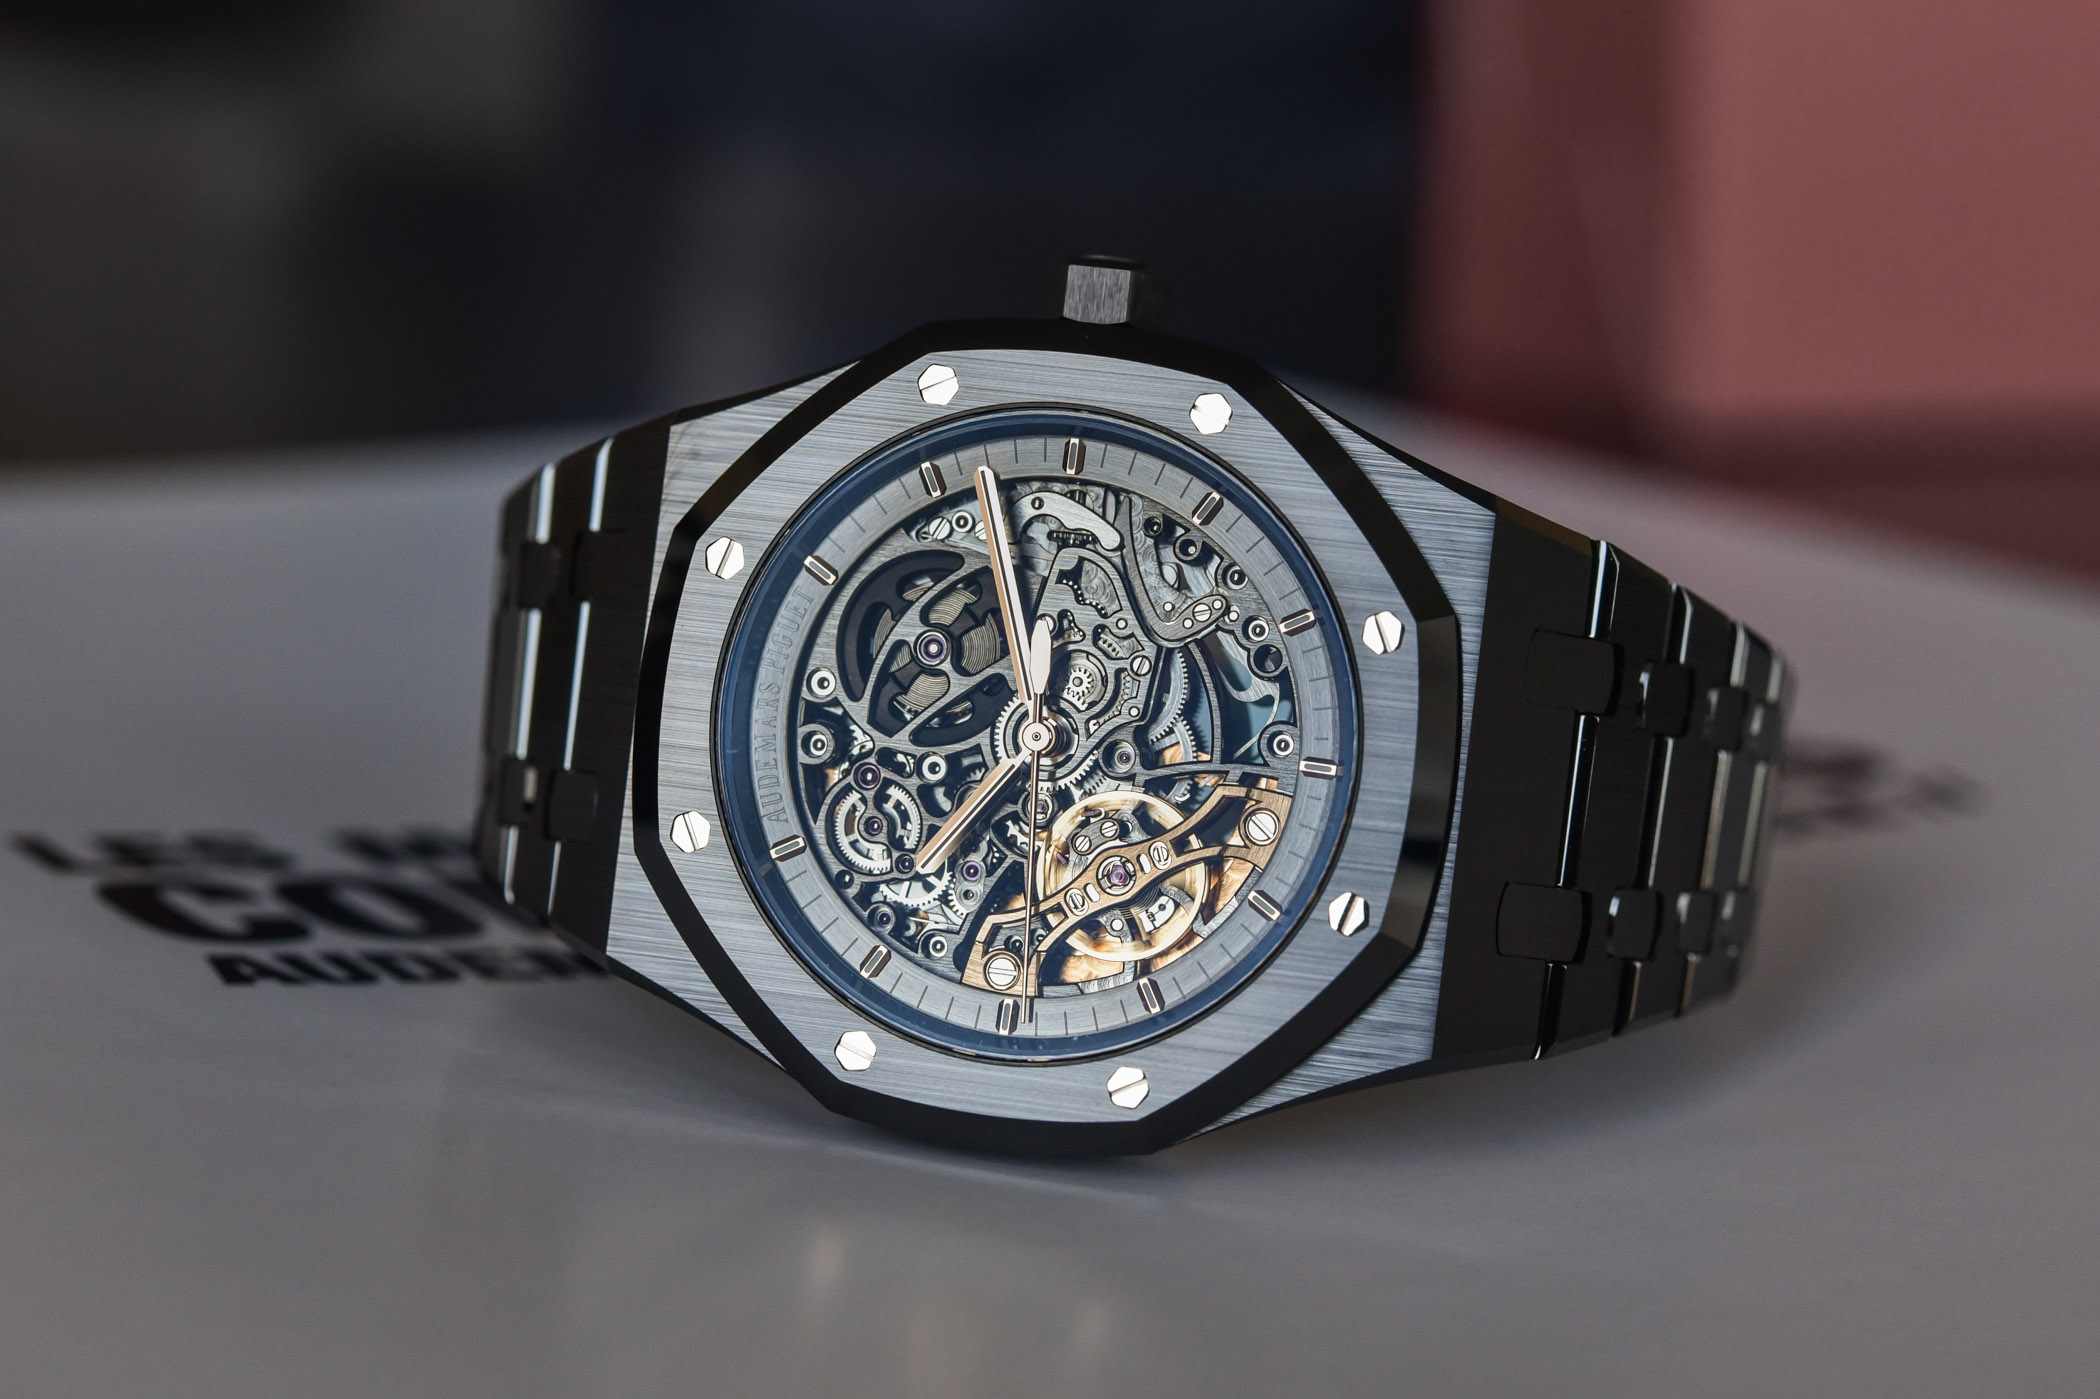 Buying Guide - Some of the Best Luxury Sports Watches of 2020